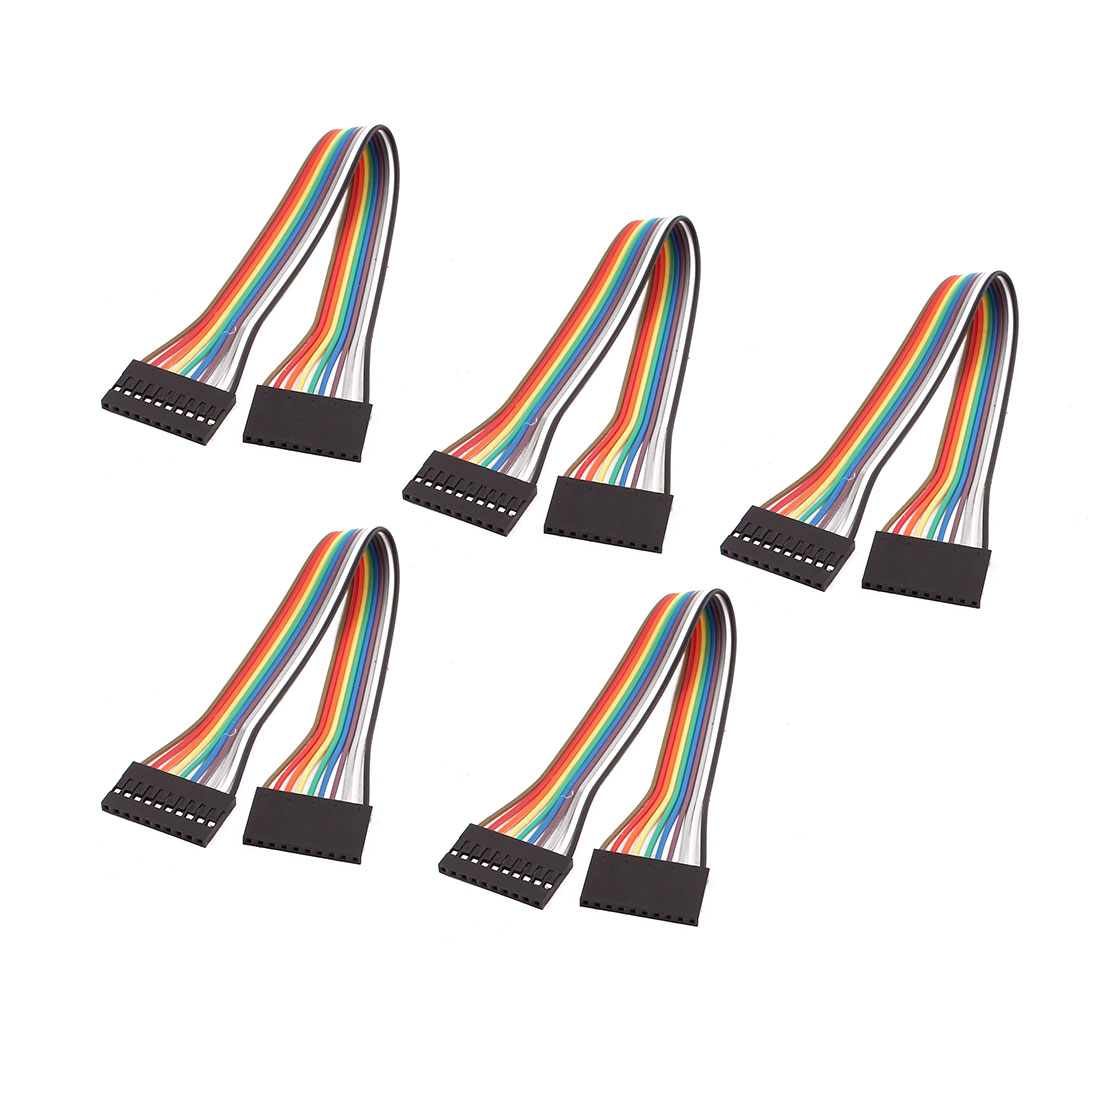 5PCS 2.54mm Pitch 10P Female Breadboard Double Head Jumper Wire Cable 20cm Length